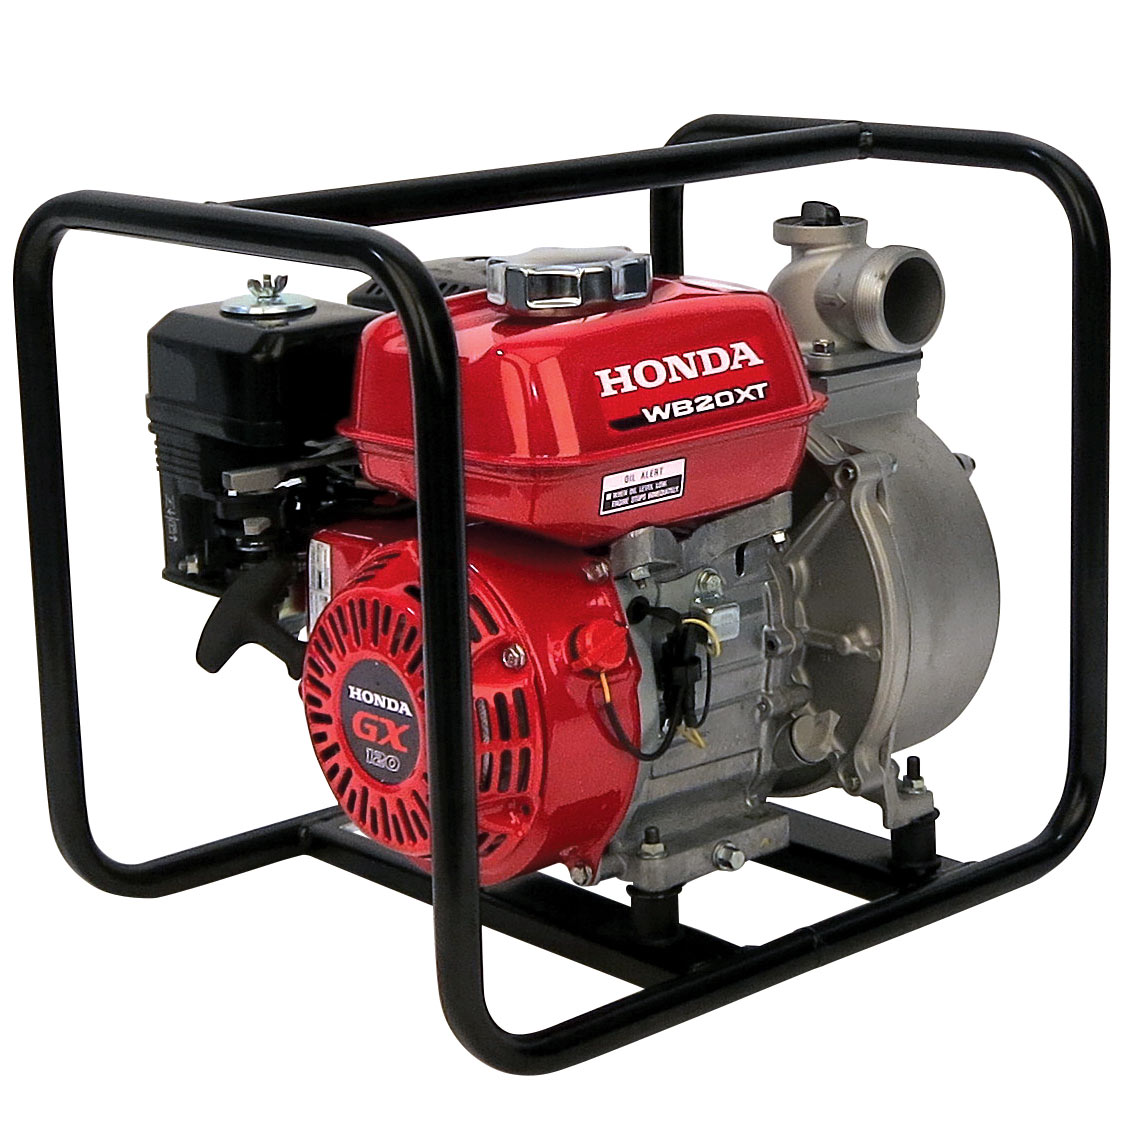 2016 Honda Power Equipment WB20 in Hot Springs National Park, Arkansas